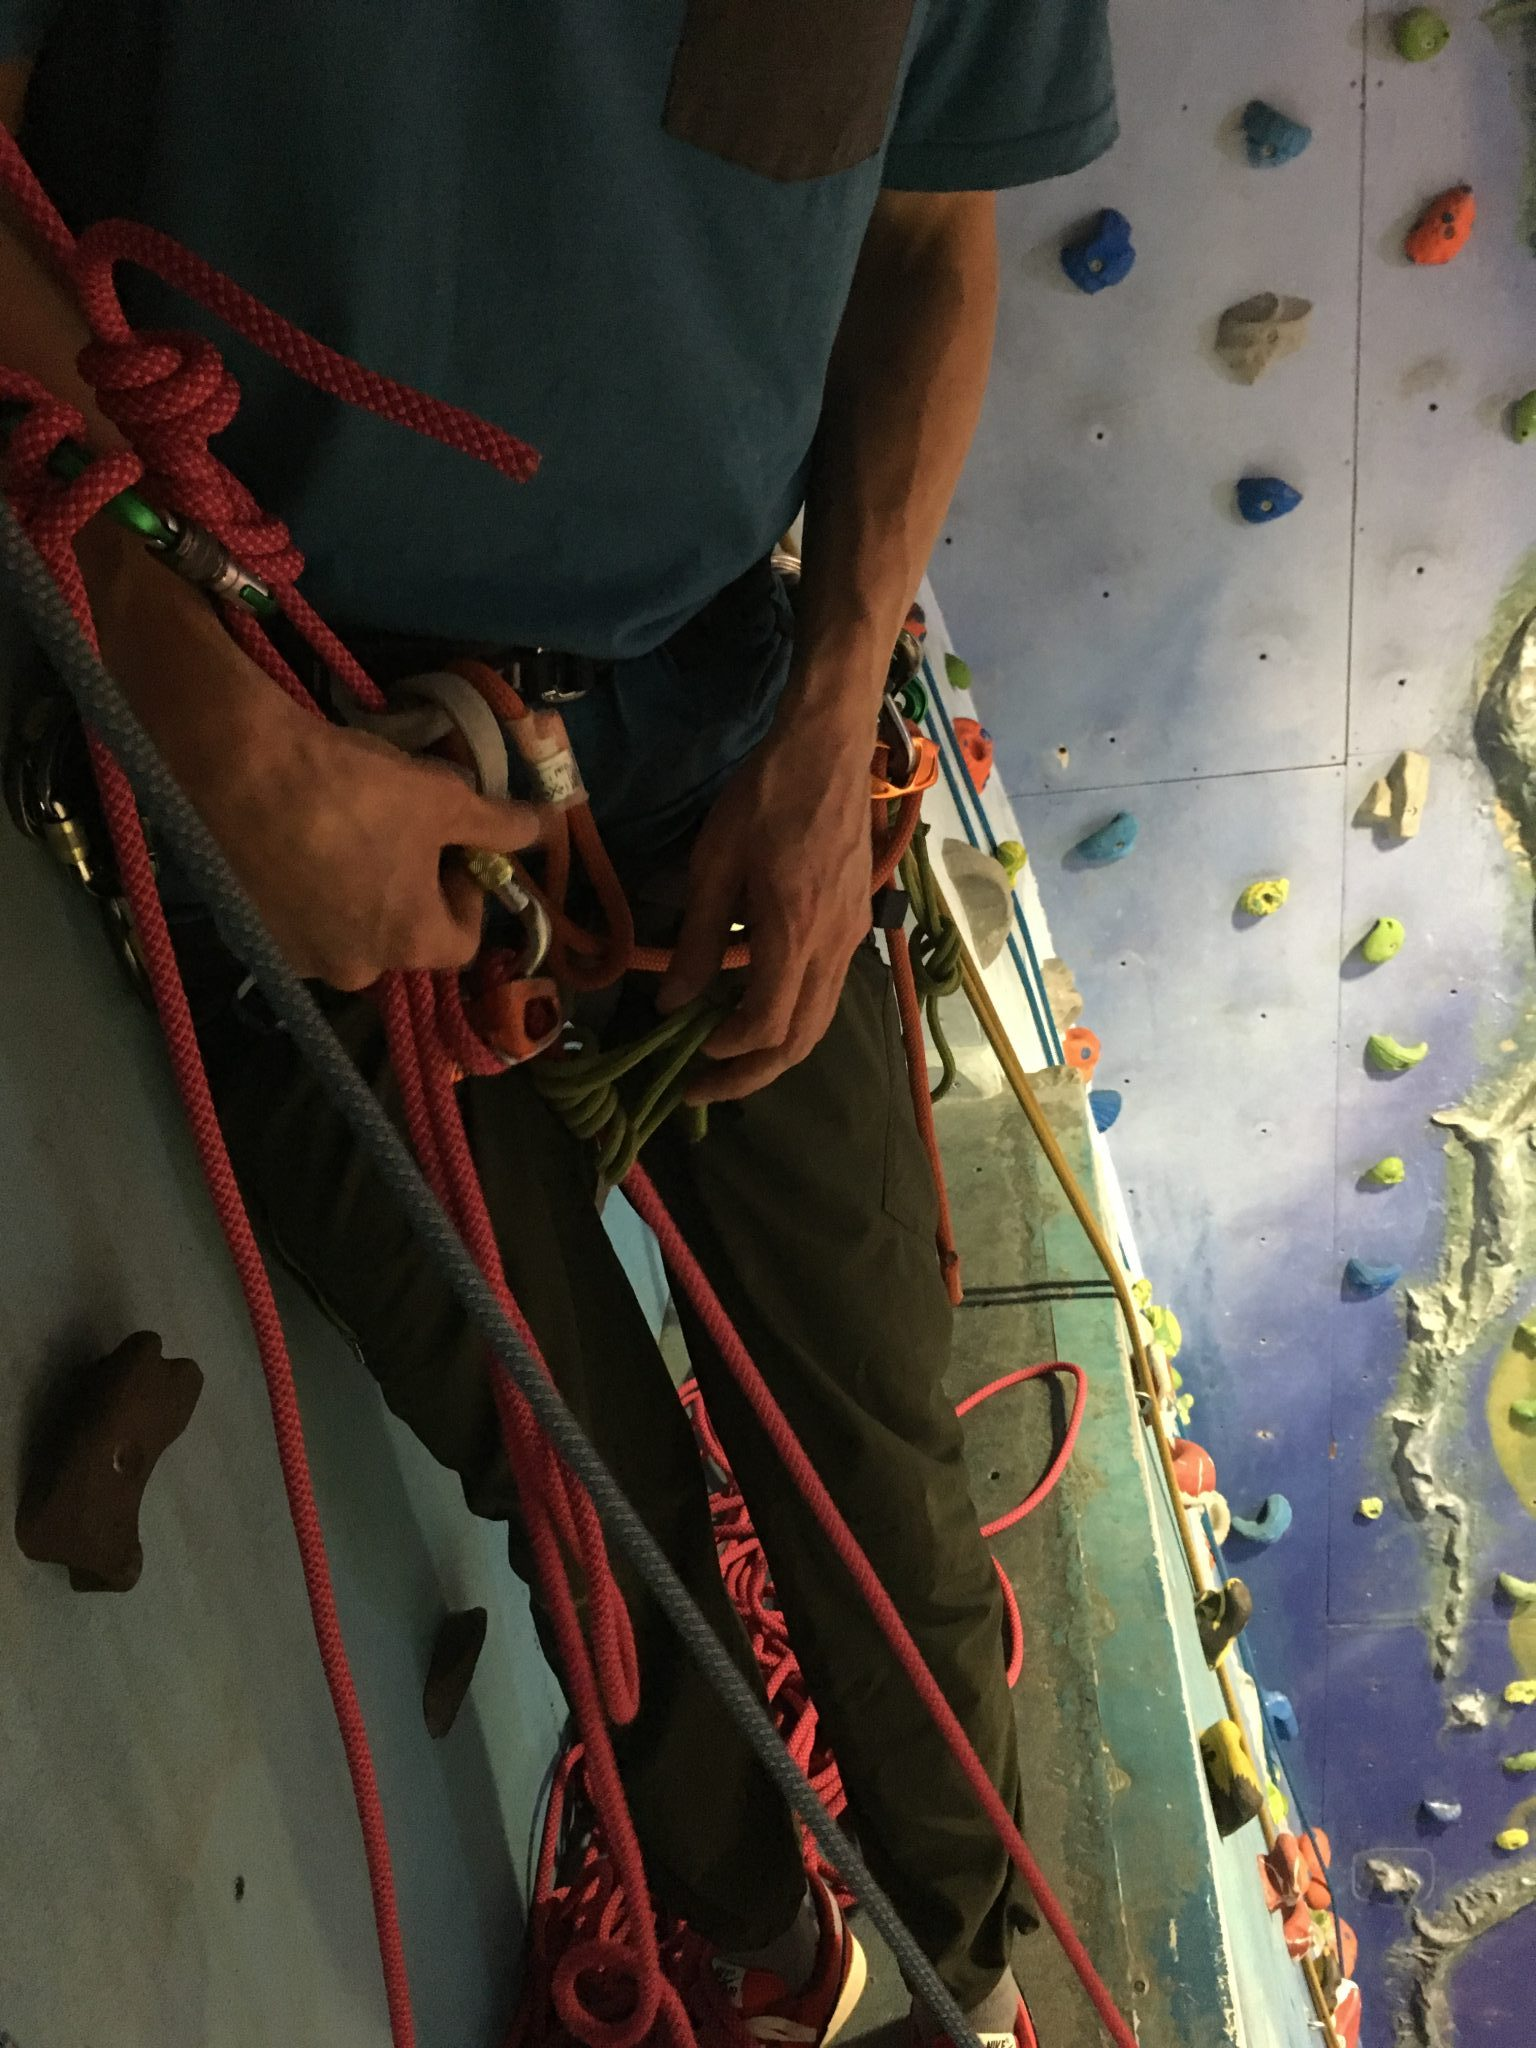 A climber attaches a prussic loop to his rope during a self-rescue course in the Lake District